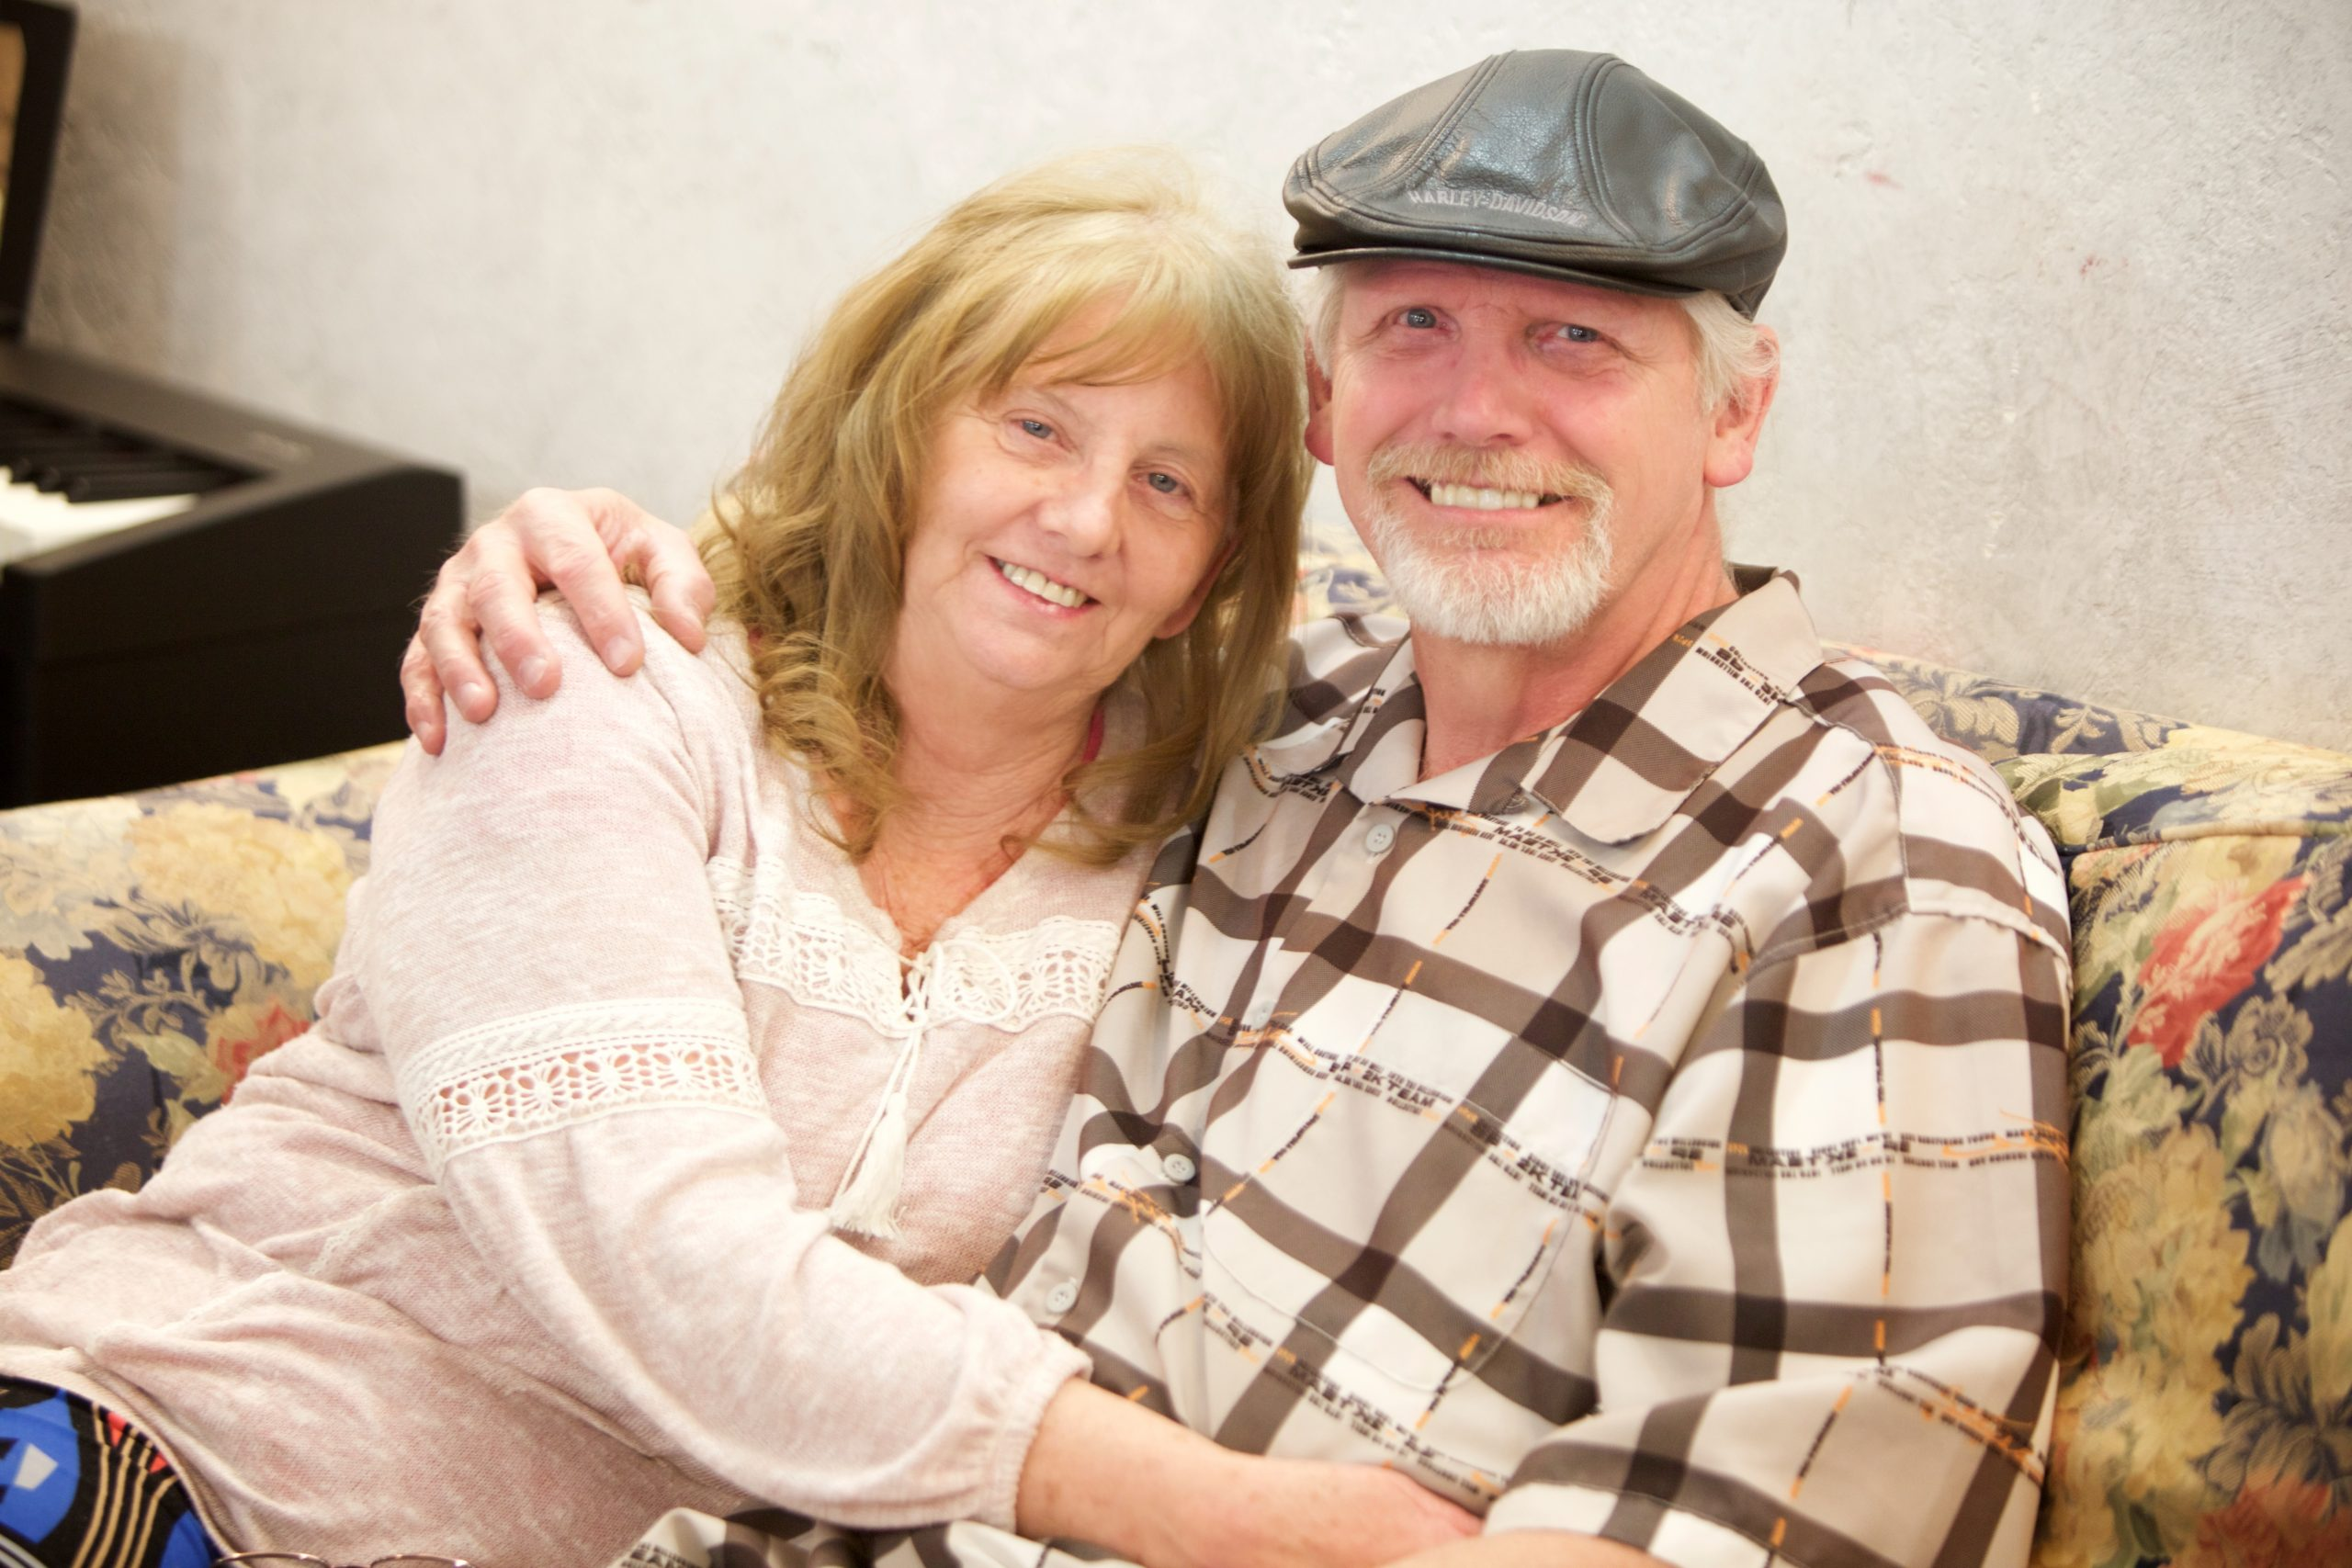 Love at First Argument: A 47-Year Lesson on Loving Each Other for Who They Are